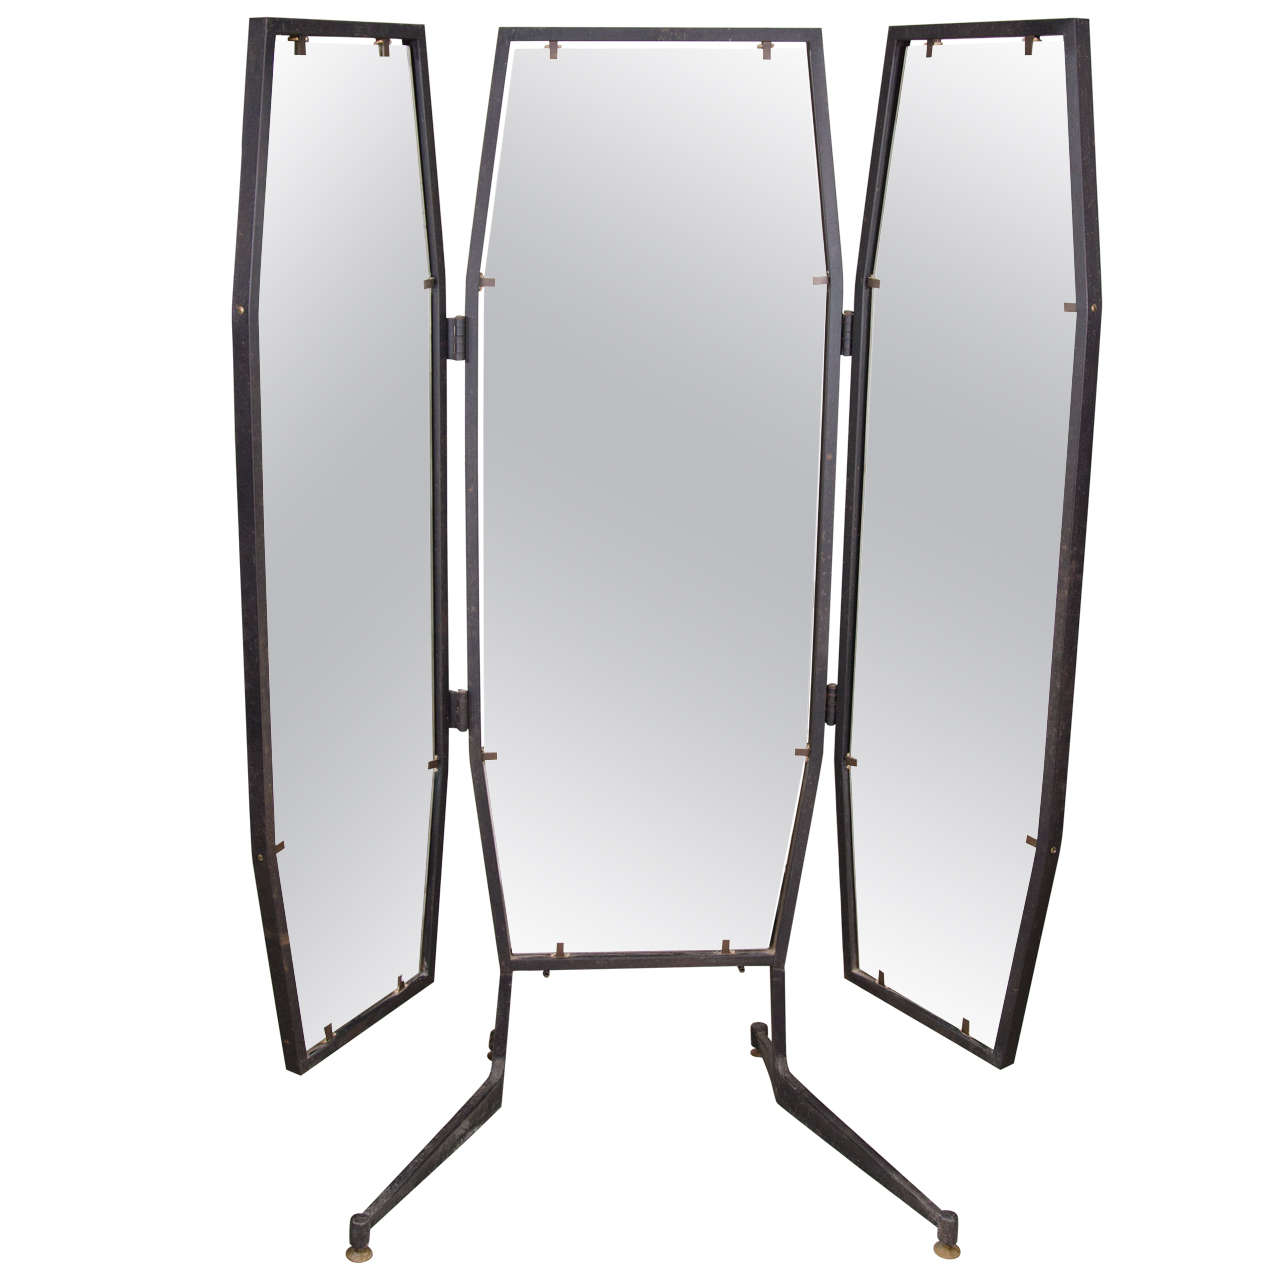 Enchanting floor length mirrors ornate ornament mirror frame can be place at your beautiful bedroom Ideas